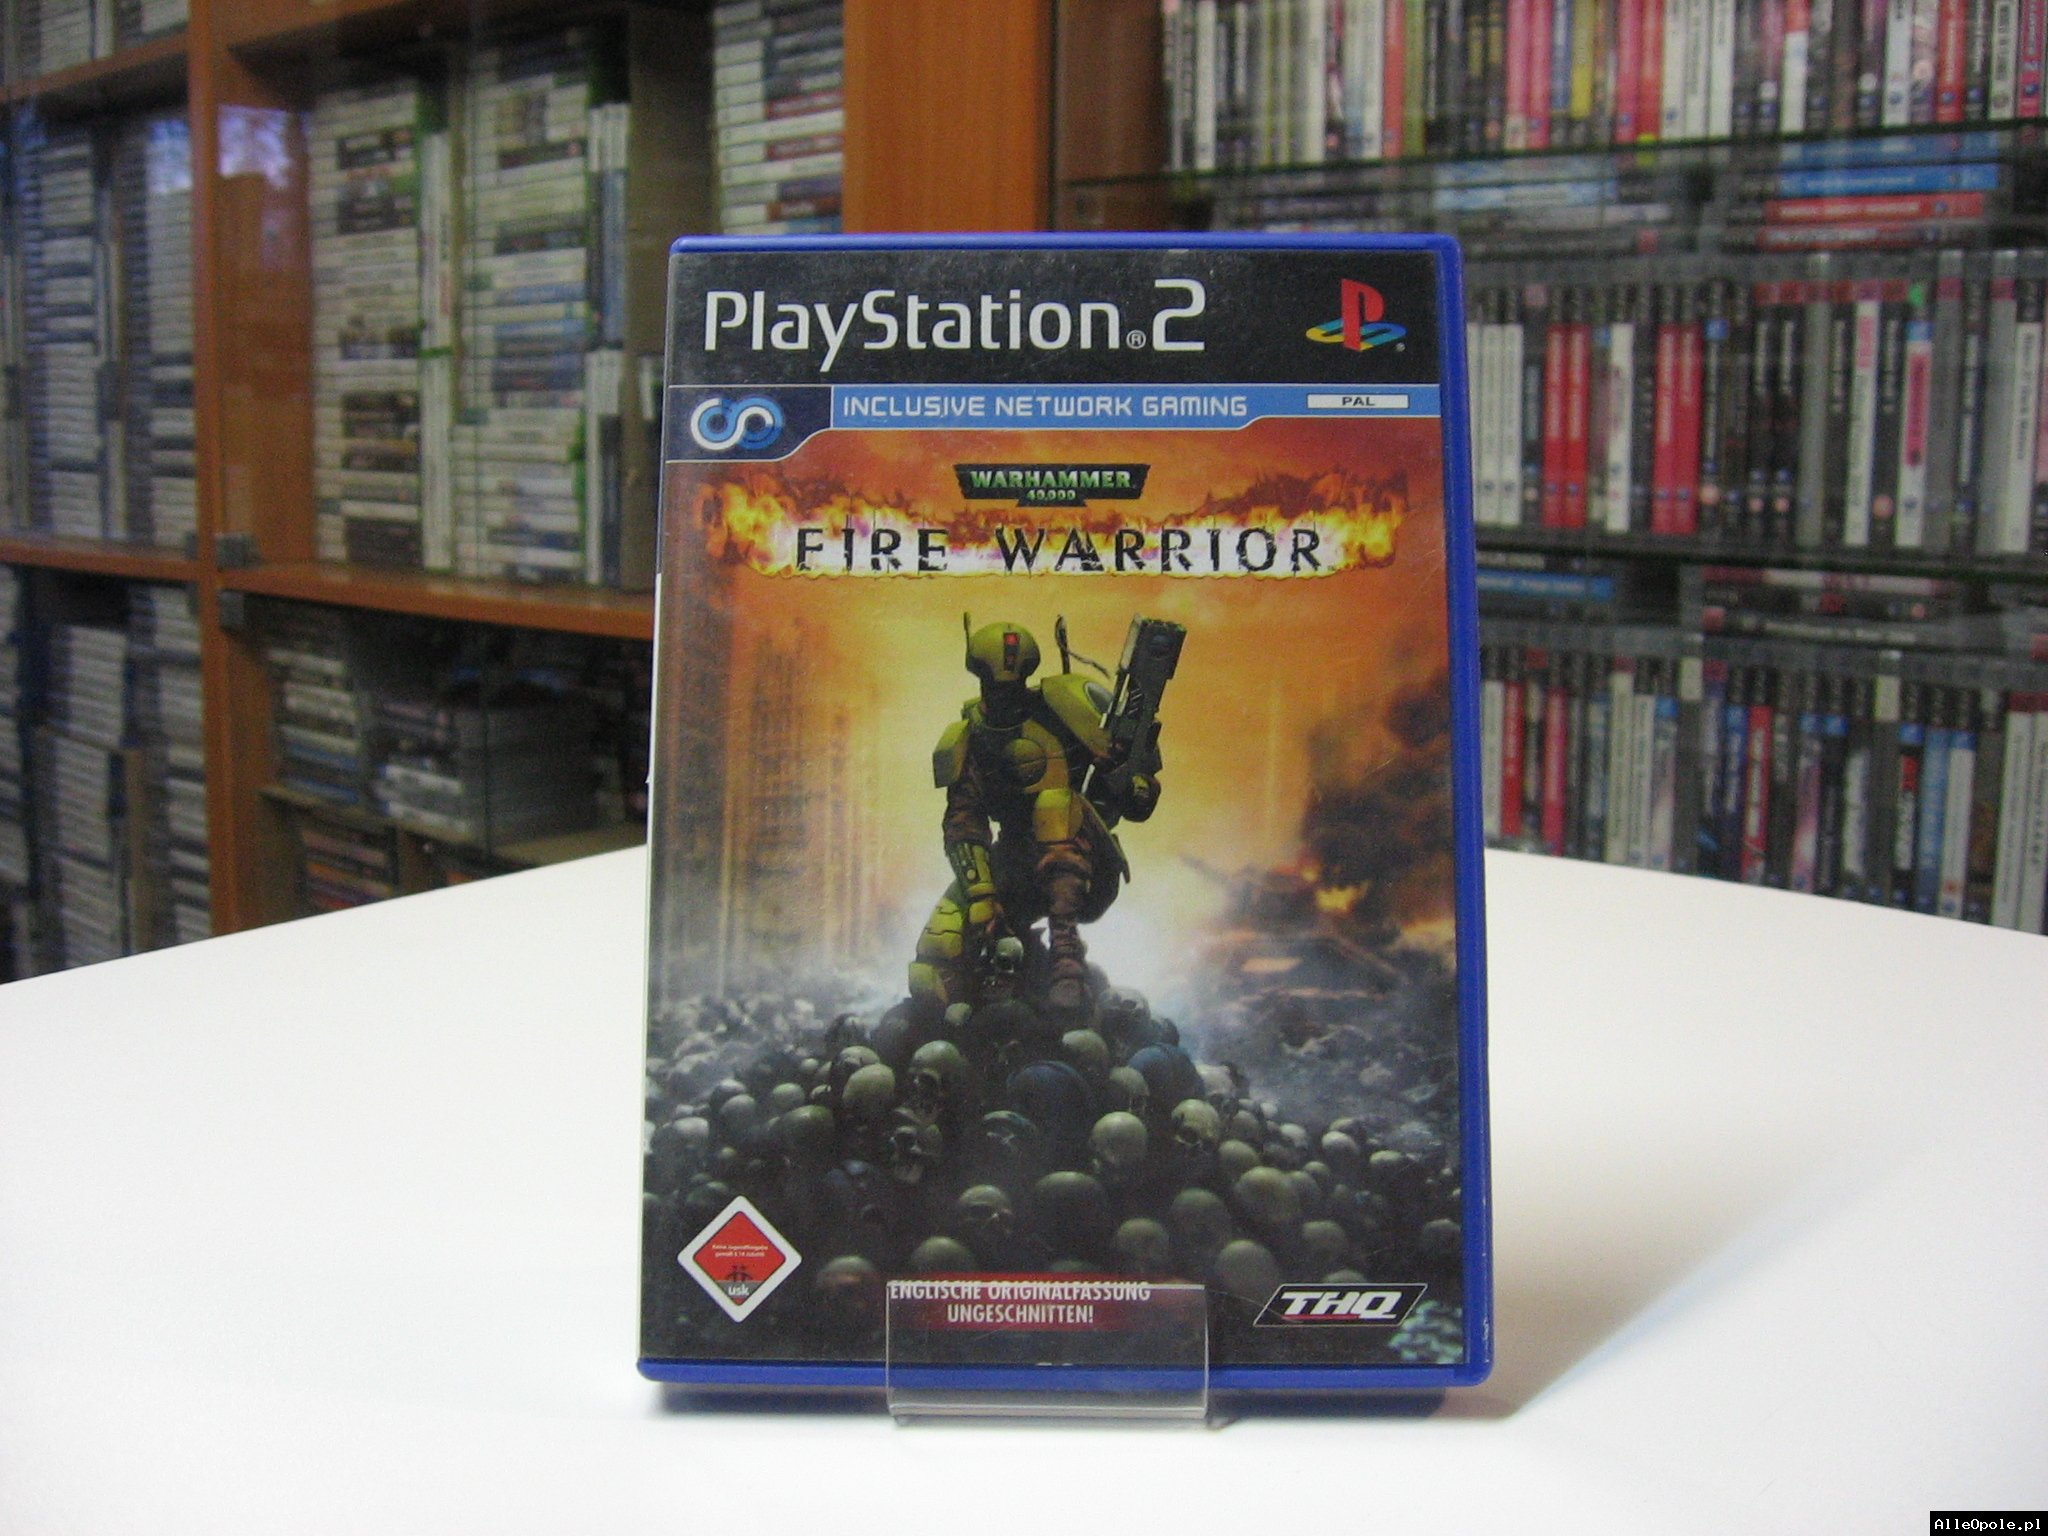 WARHAMMER 40000 FIRE WARRIOR - GRA Ps2 - Opole 0571